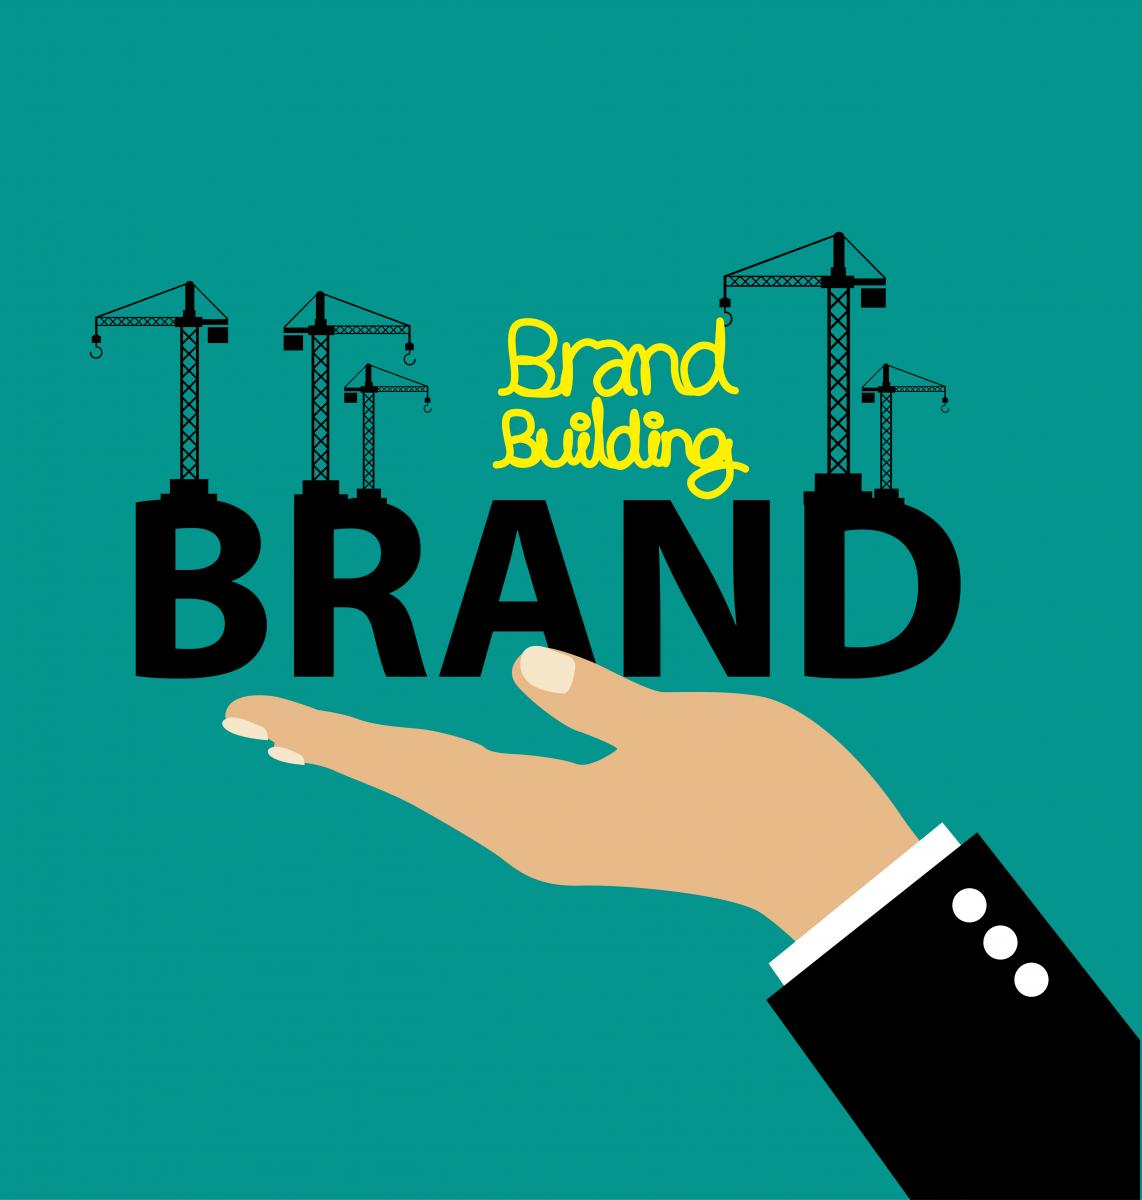 Create Attractive Brand Image for Branding